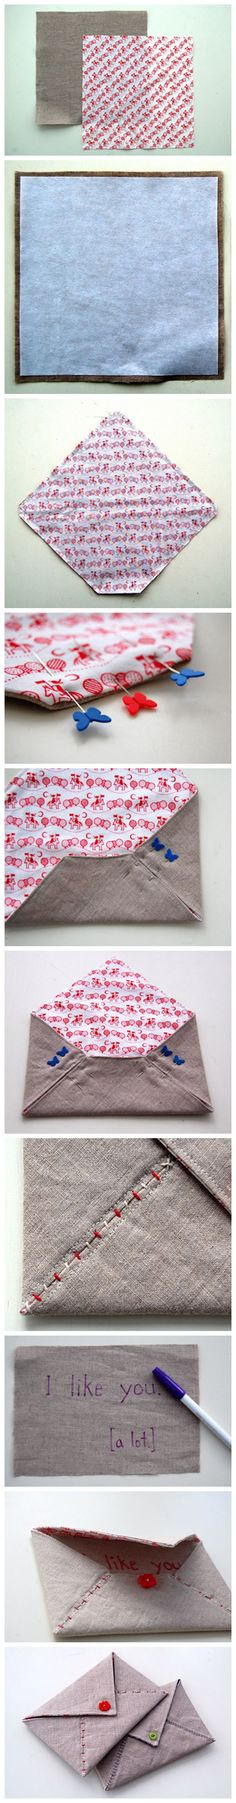 Stitched envelope...awesome!!!!